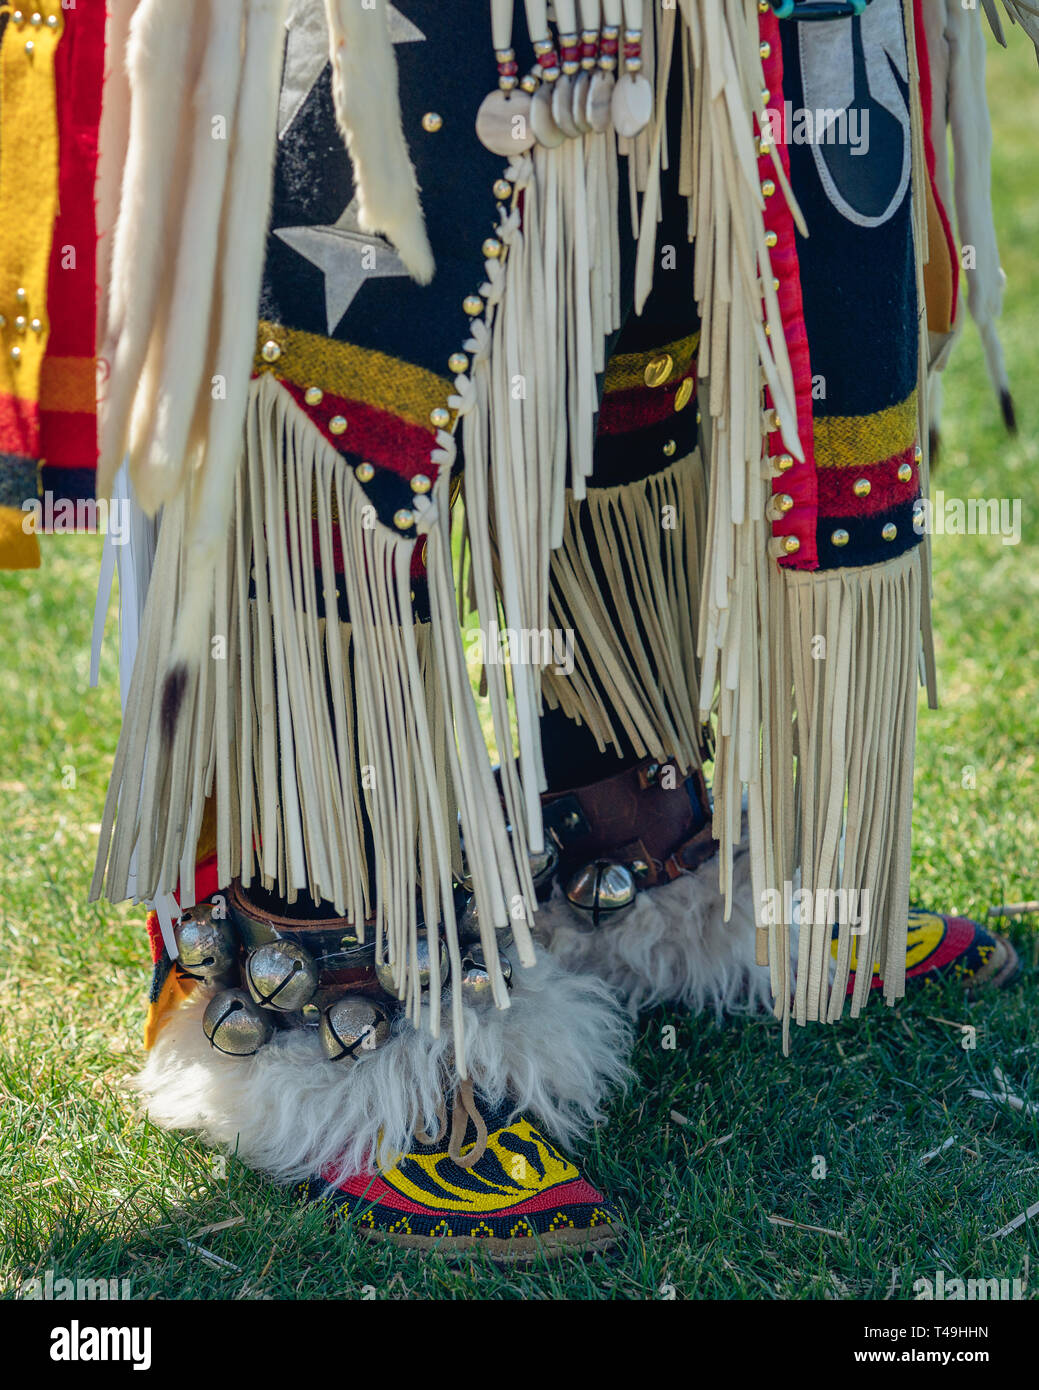 2019 Chumash Day Powwow and Intertribal Gathering, Malibu, California, April 13, 2019 - Stock Image